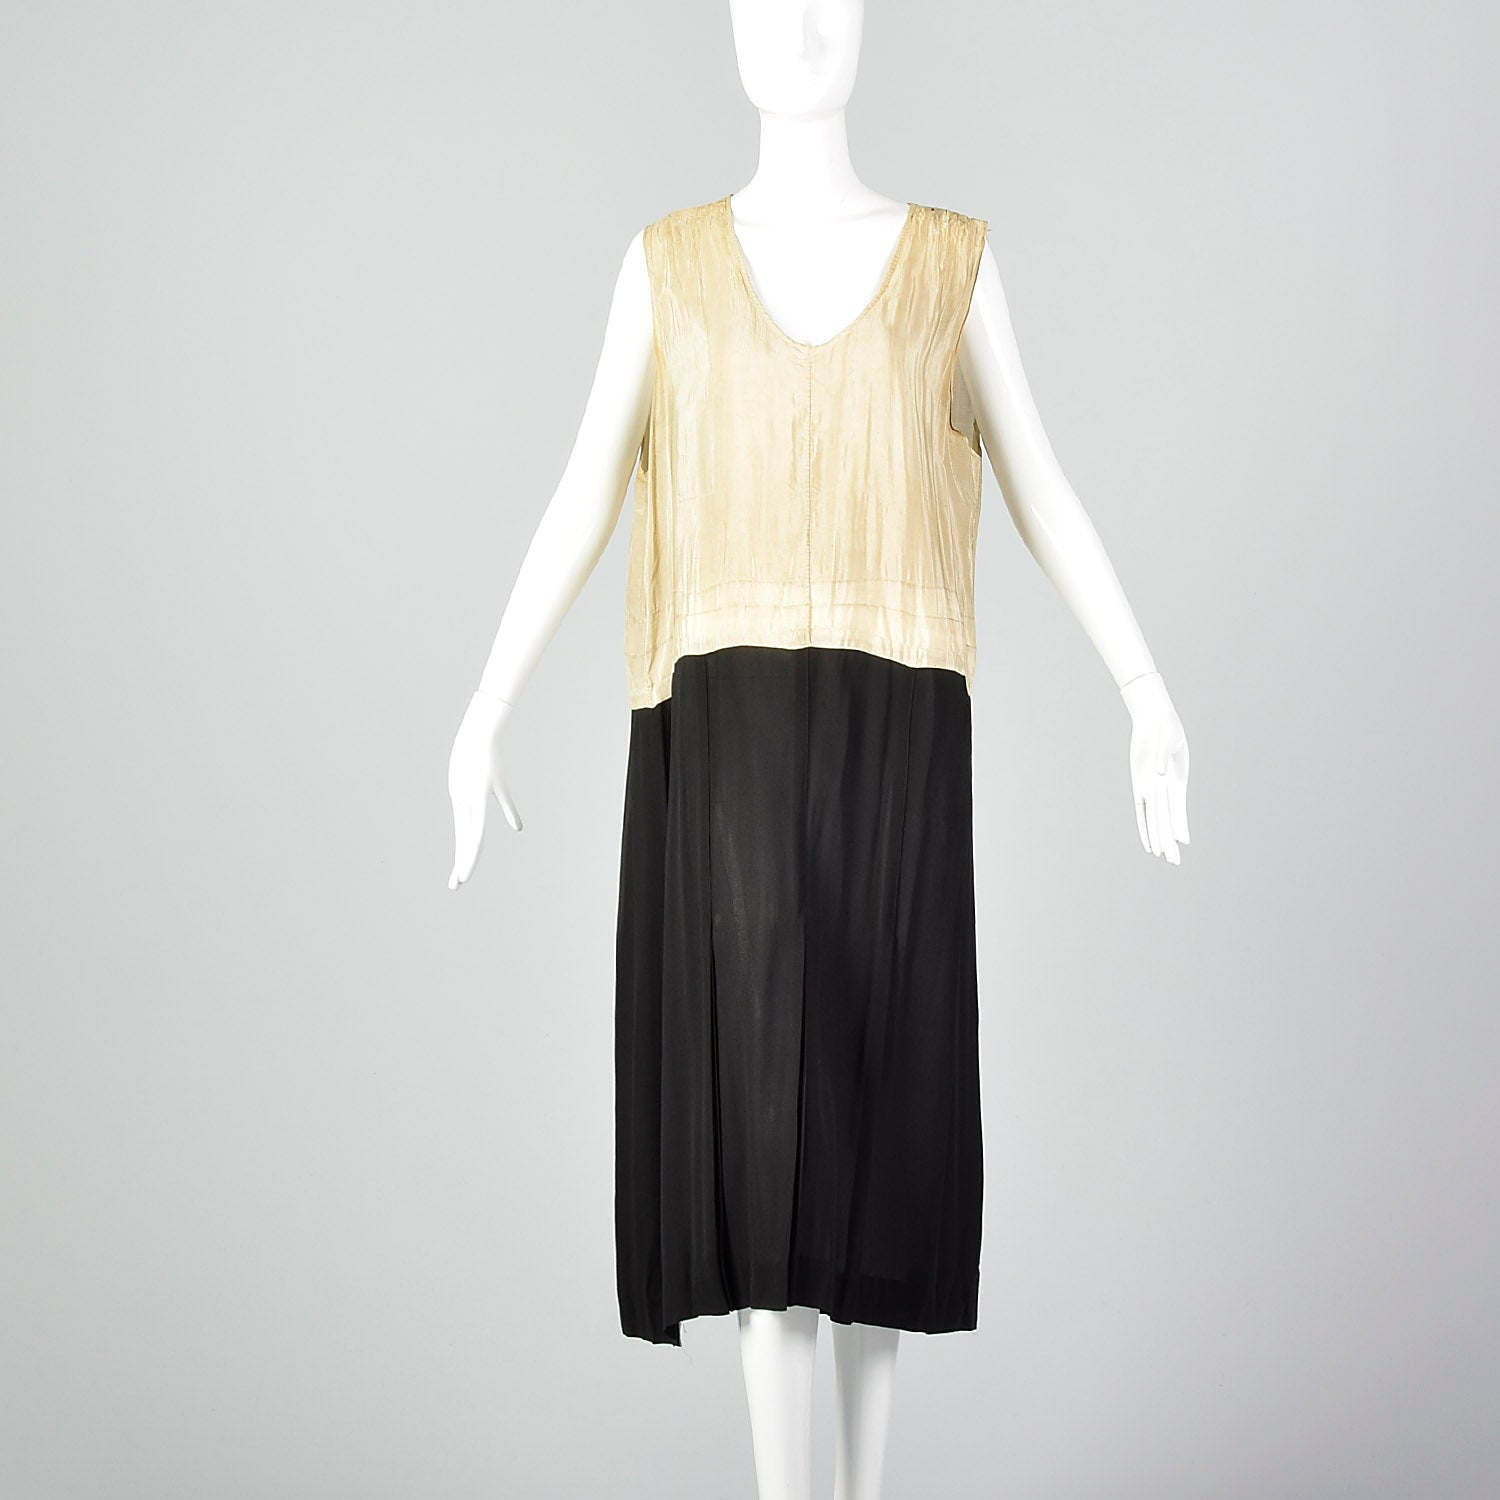 Large 1920s Dress and Wrap Top